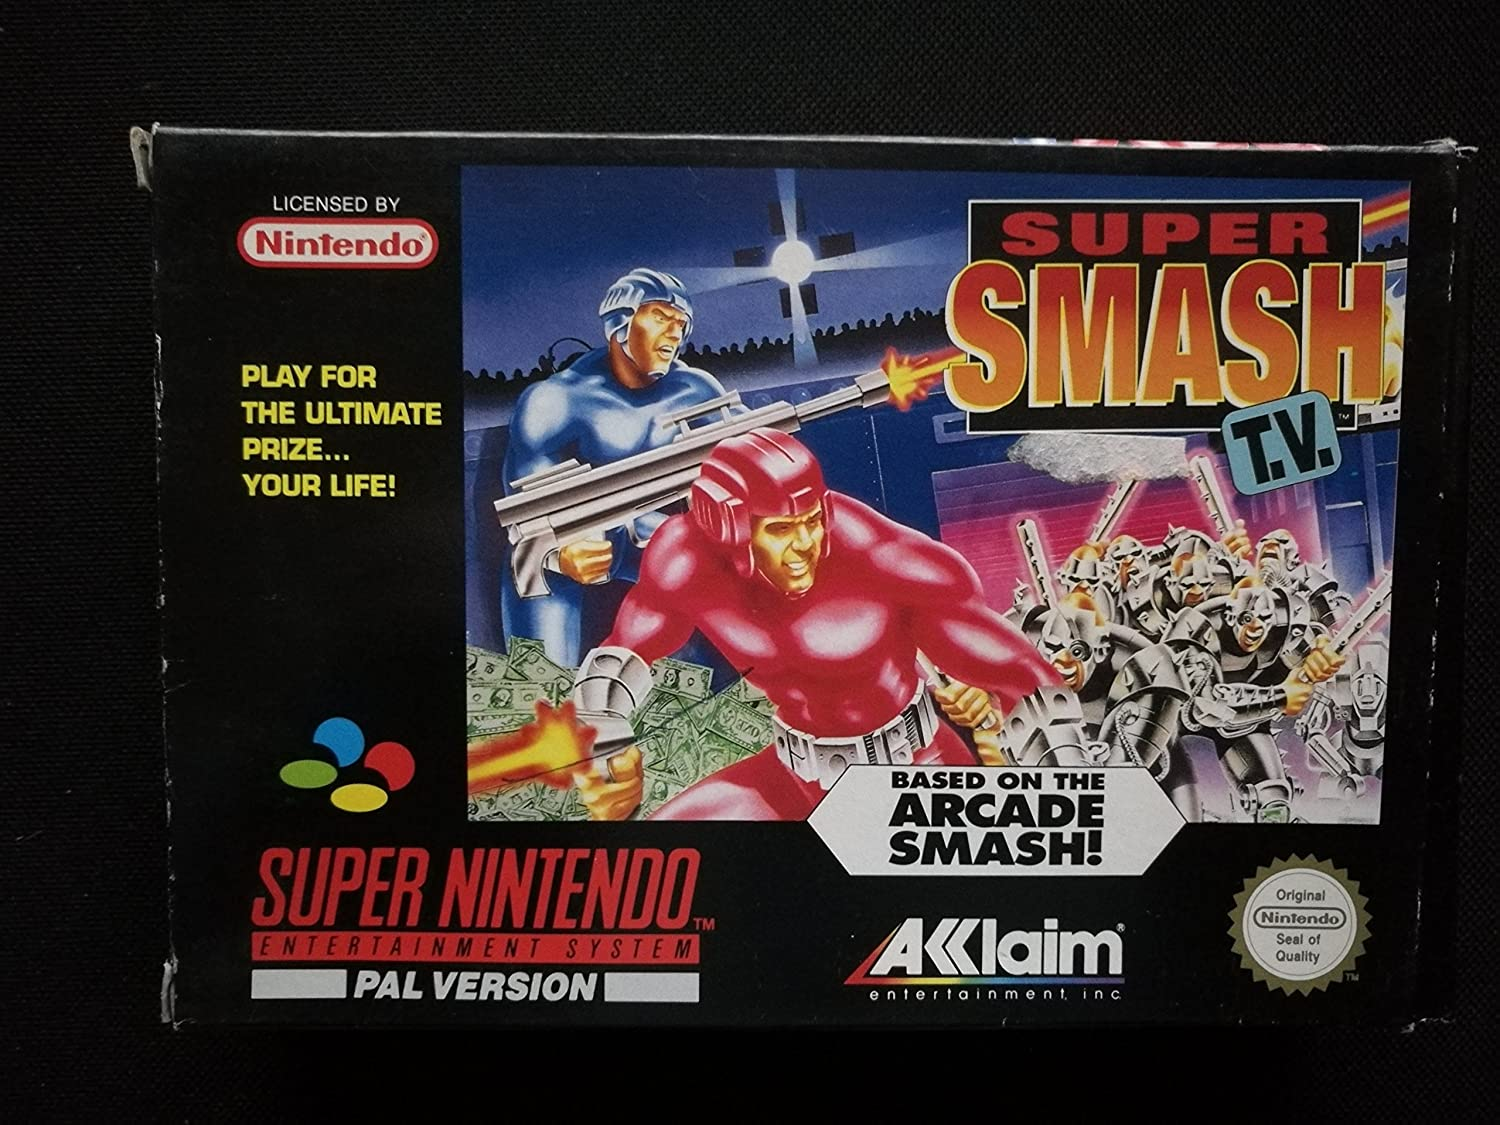 Amazon.com: Super Smash TV - Nintendo Super NES: Super ...